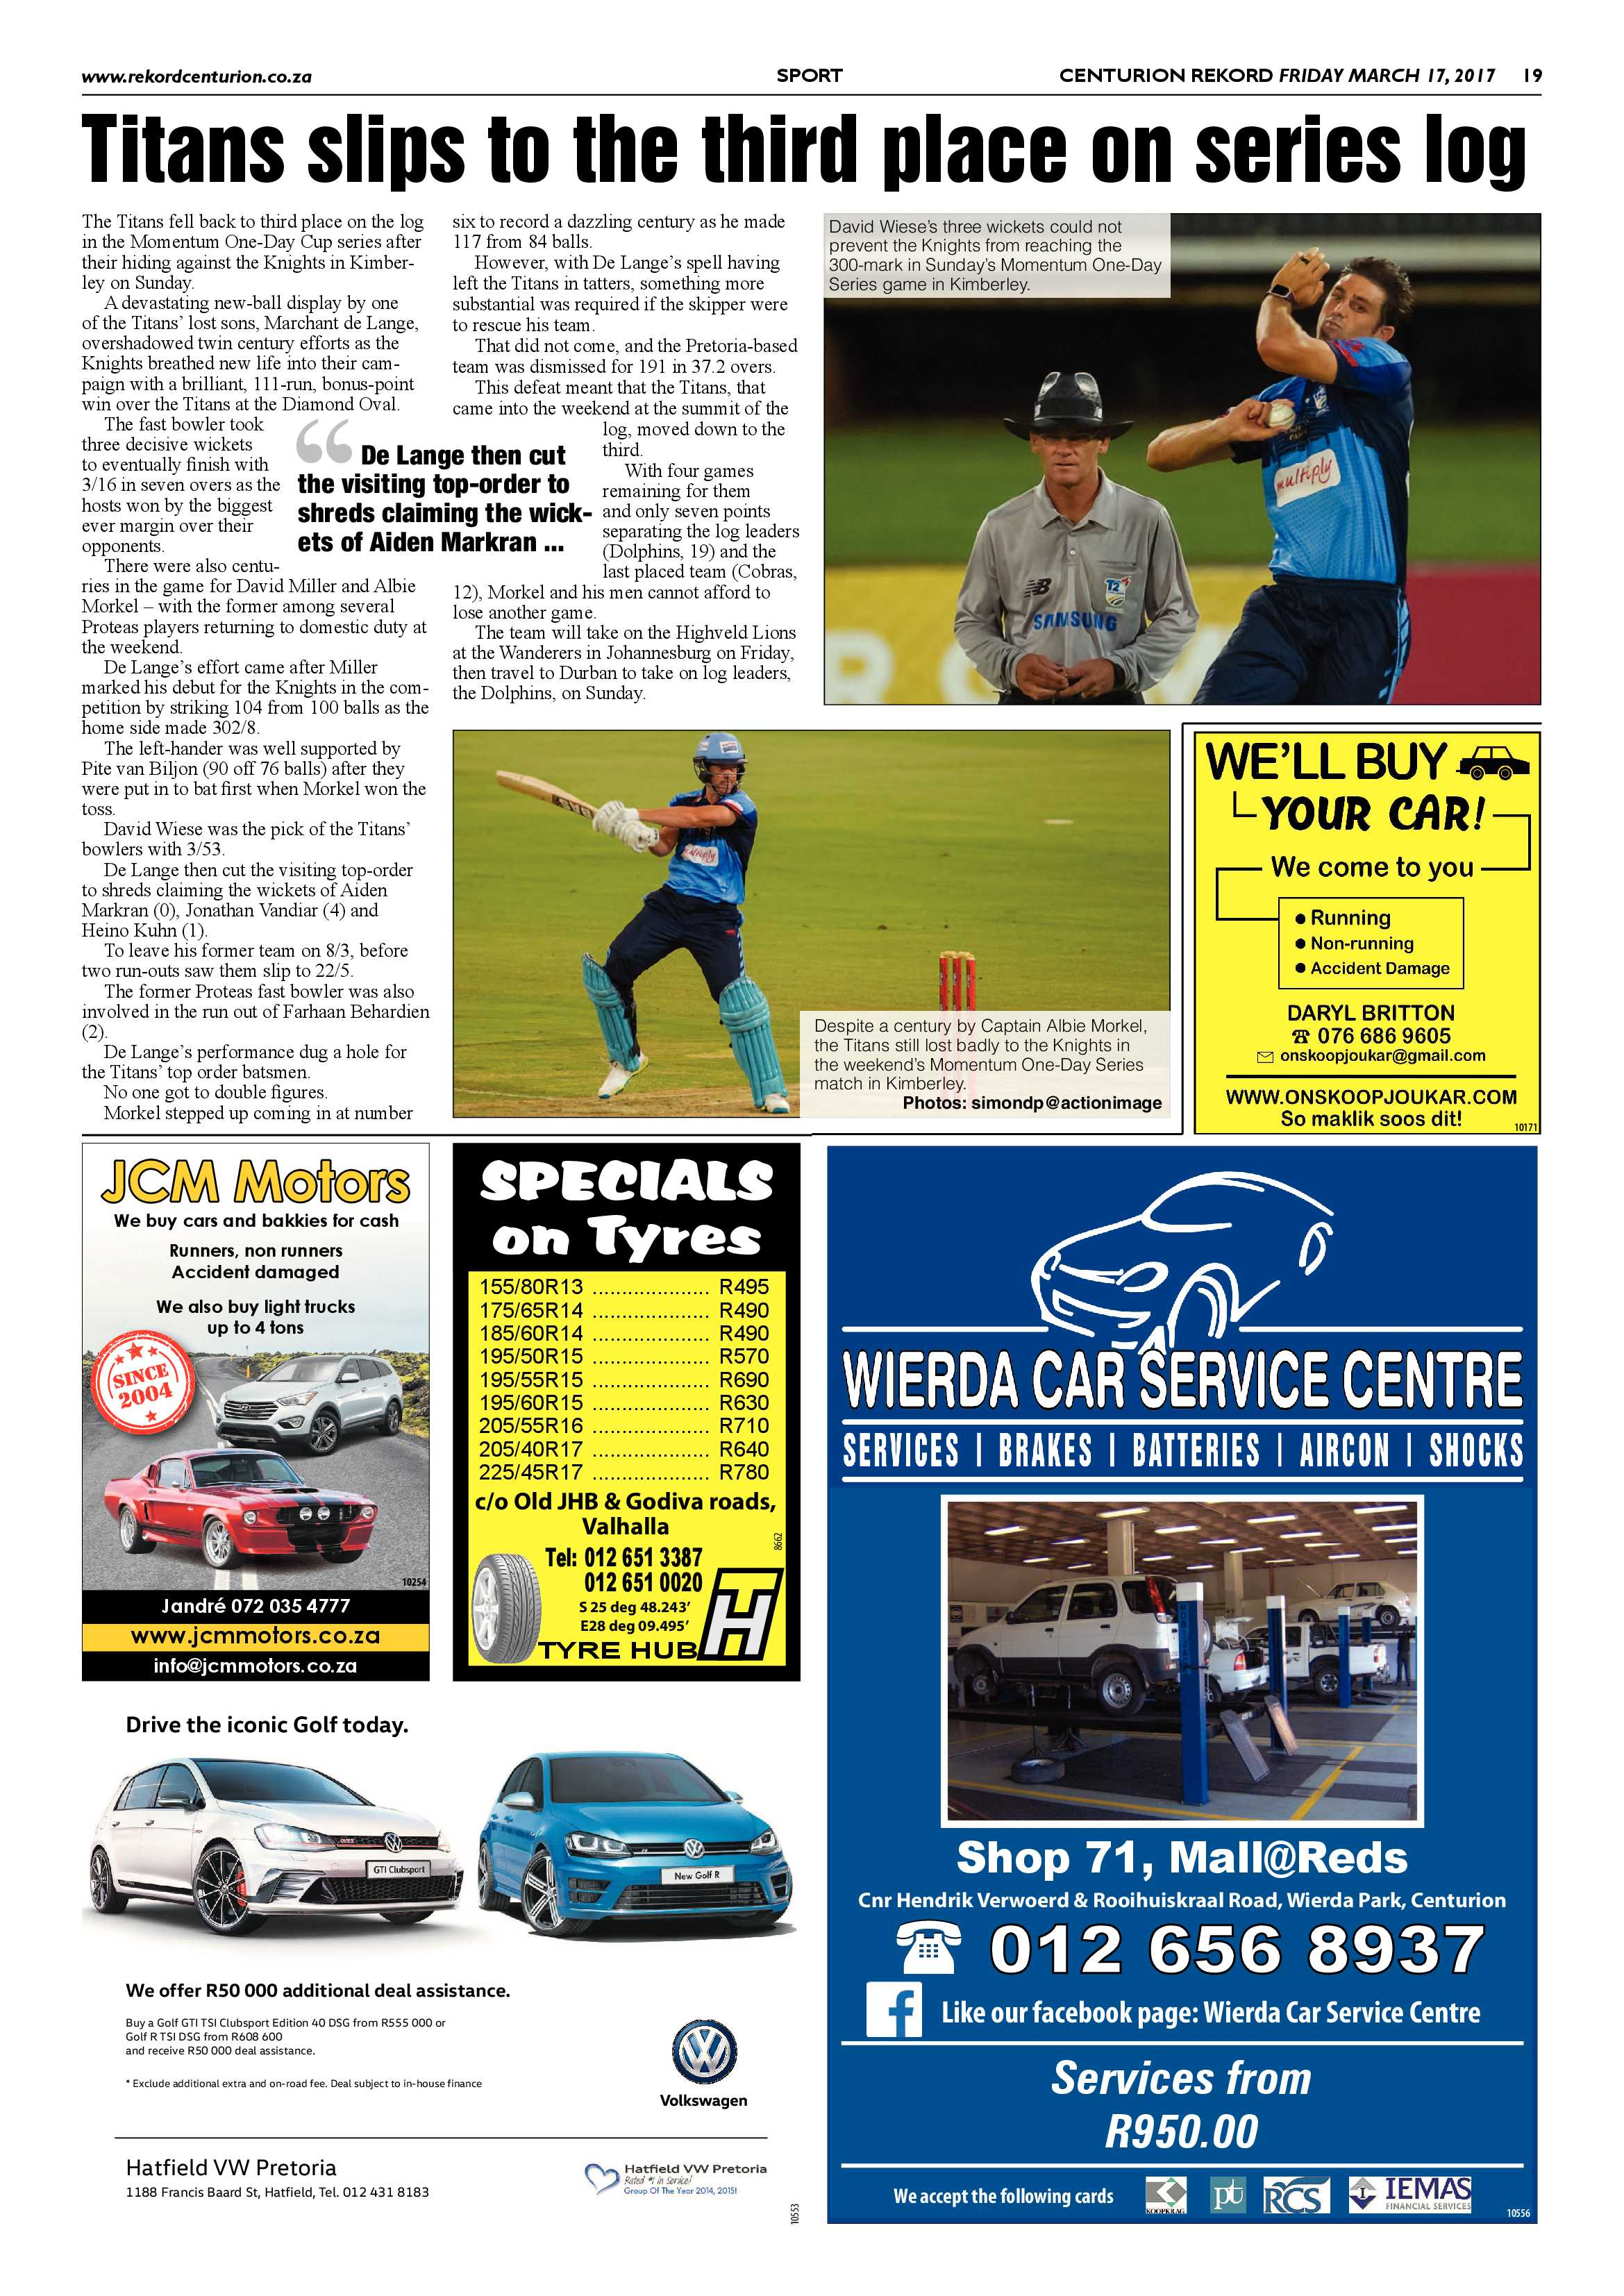 rekord-centurion-17-march-2017-epapers-page-19